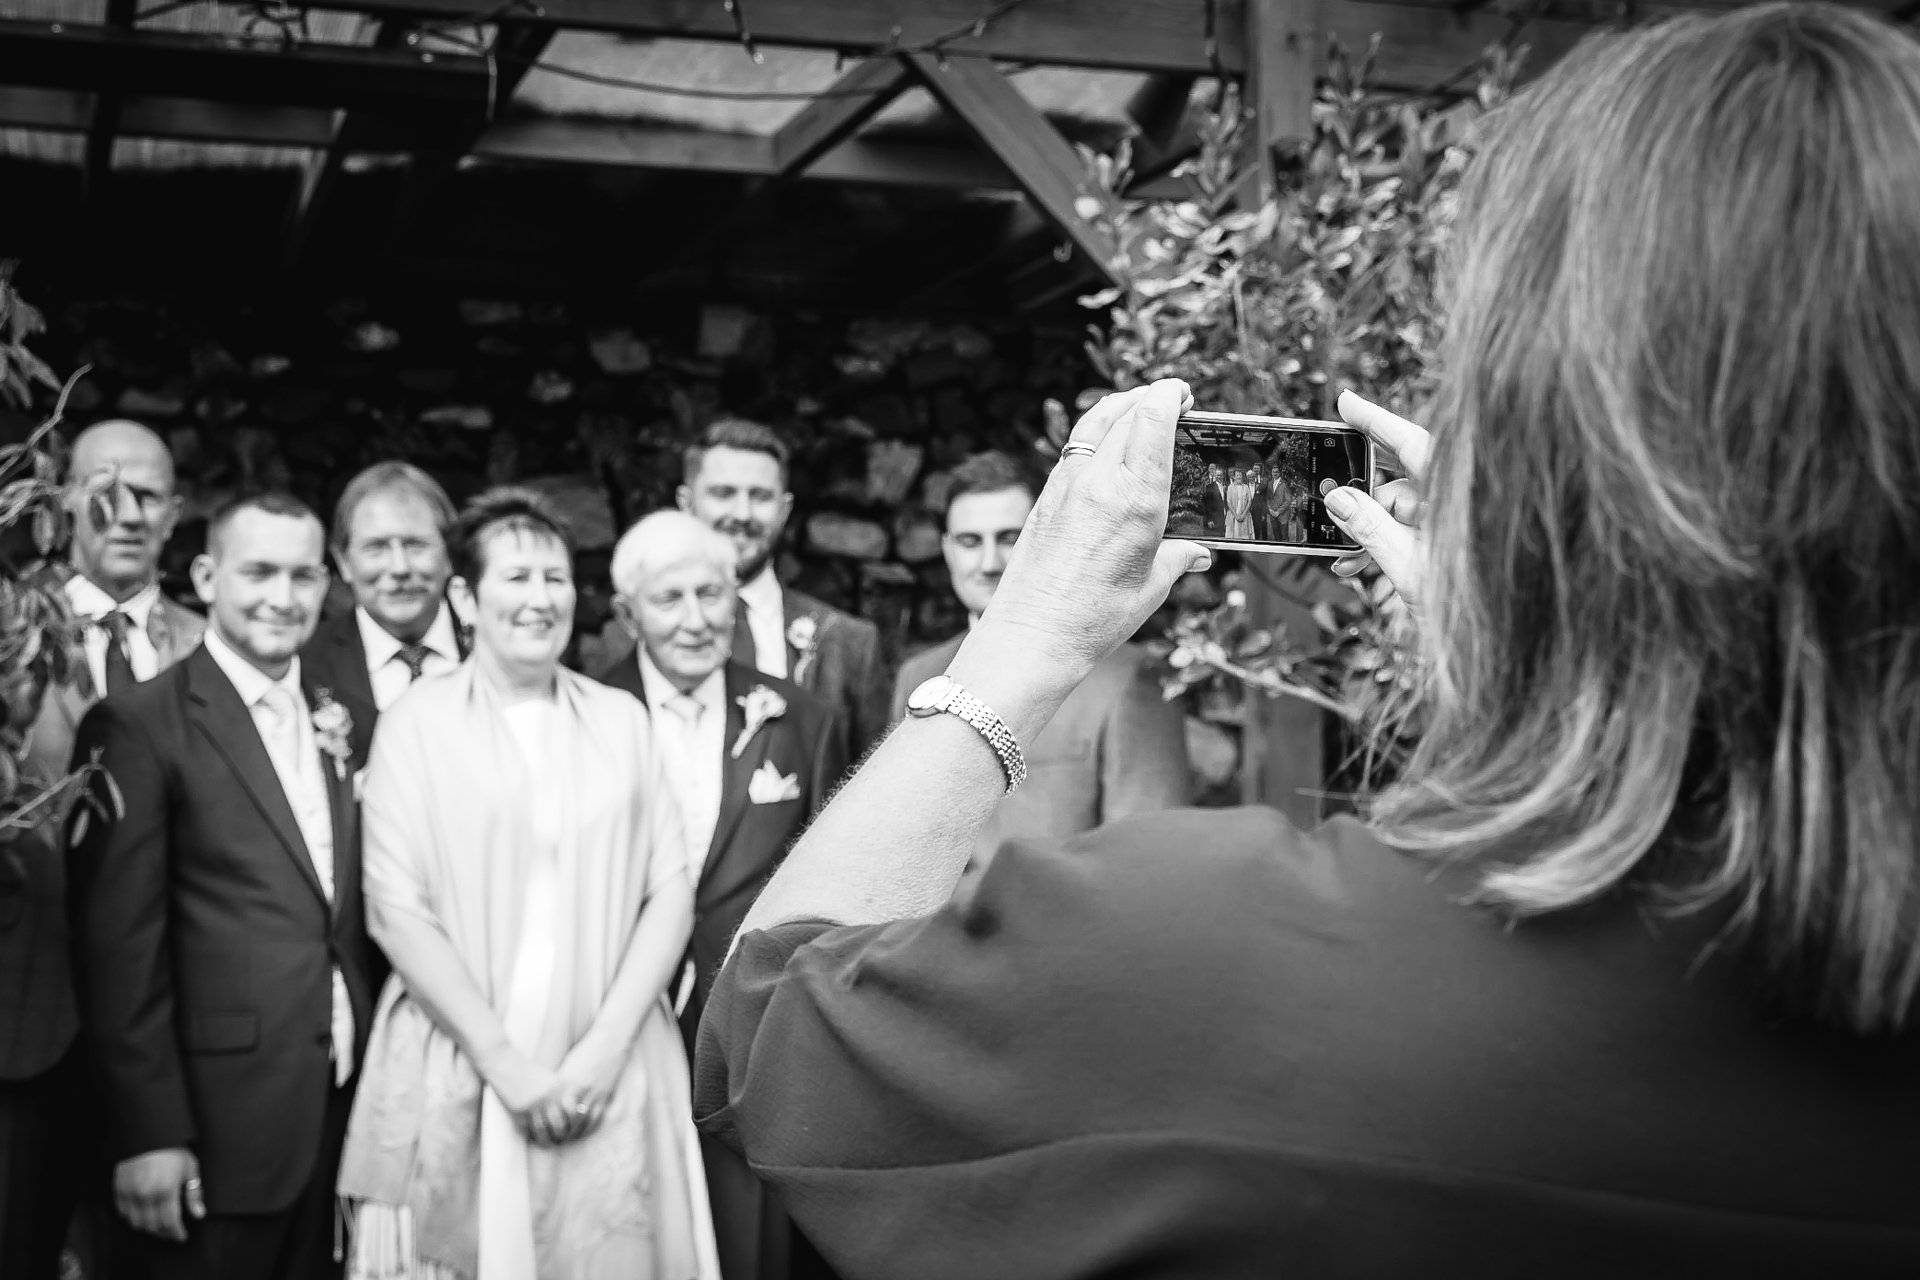 Wedding guest taking a group photograph